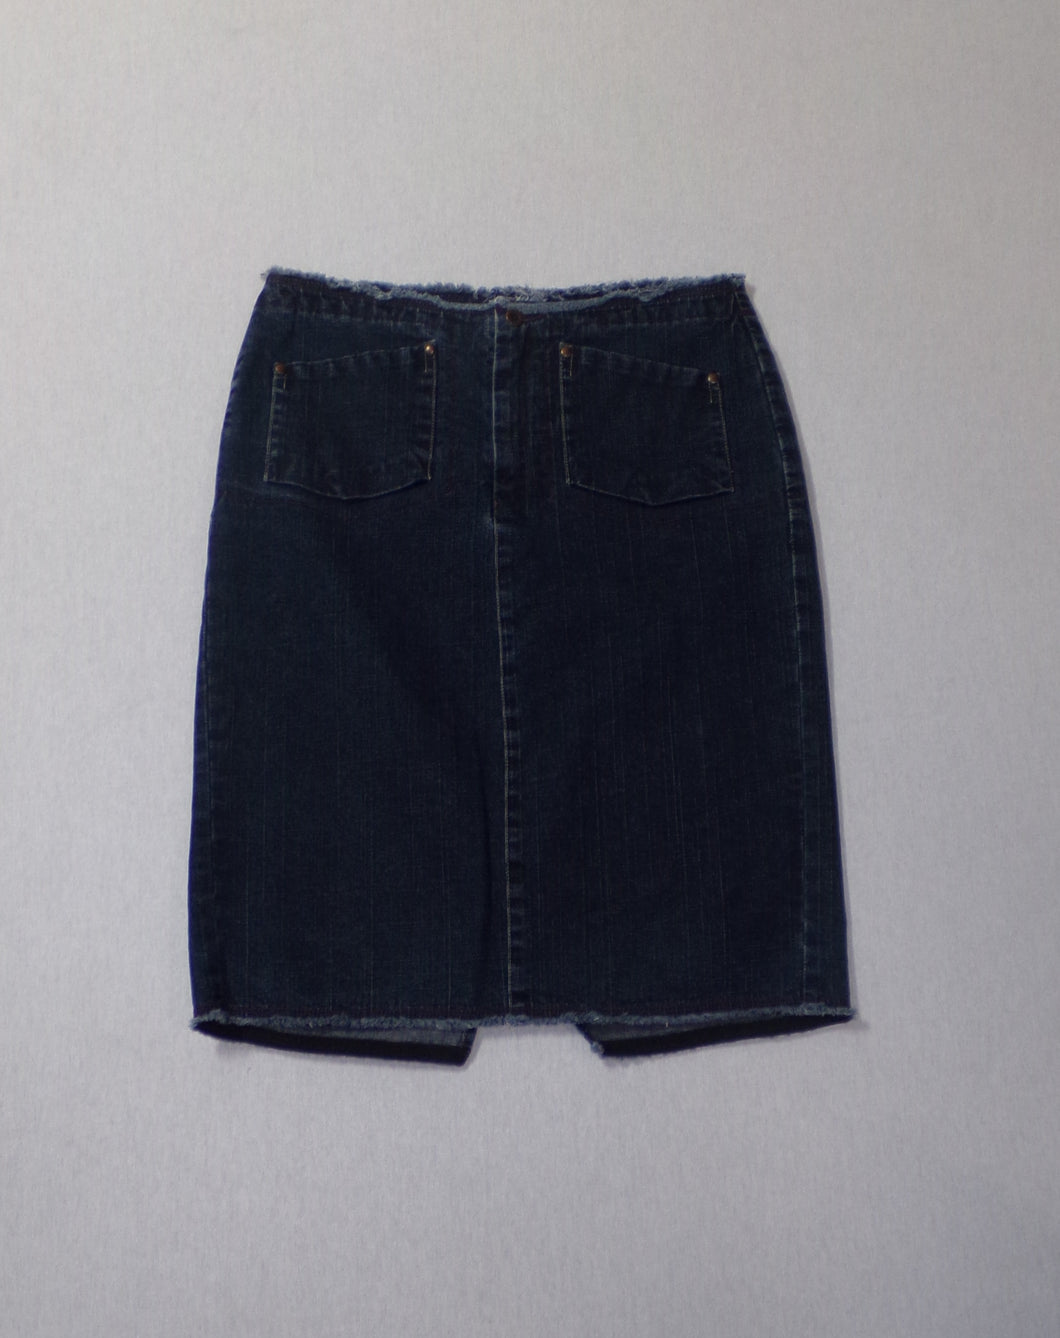 From White Stuff we have this denim skirt with a frayed hem and frayed waistband detail. It has two back pockets, two front pockets and a zip fastening. A pretty little skirt for wearing with thick tights and ankle boots or in the summer with a casual tee. So versatile.  80% Cotton 18% Polyester 2% Elastane